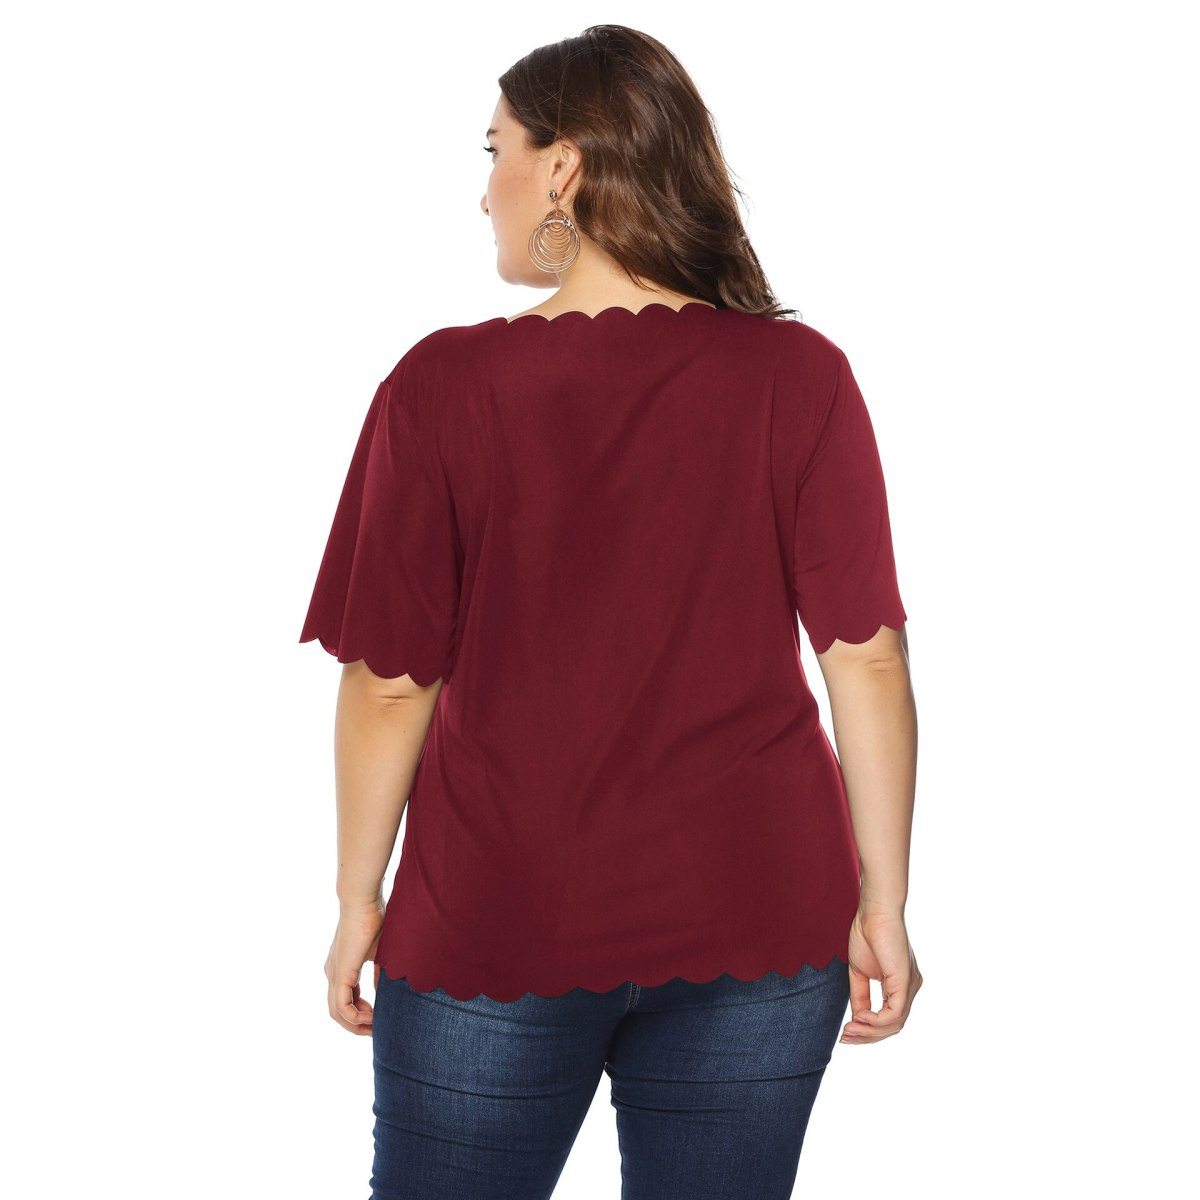 Plus Size Casual Blouse Women 2020 Fashion O Neck Short Sleeve Red Lip Sequined Elegant Blouse Ladies Tunic Tops